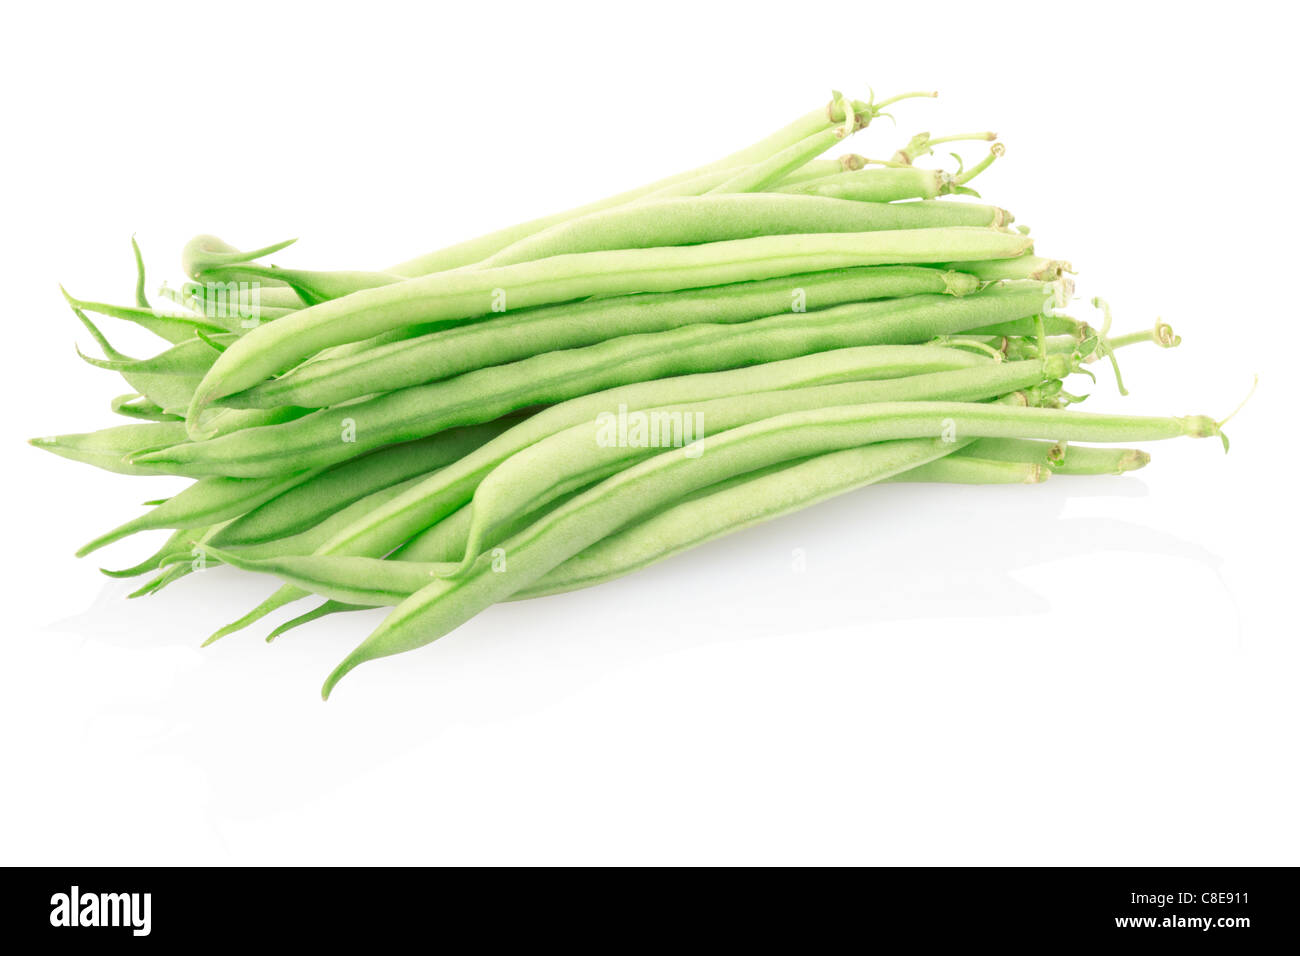 Green beans - Stock Image